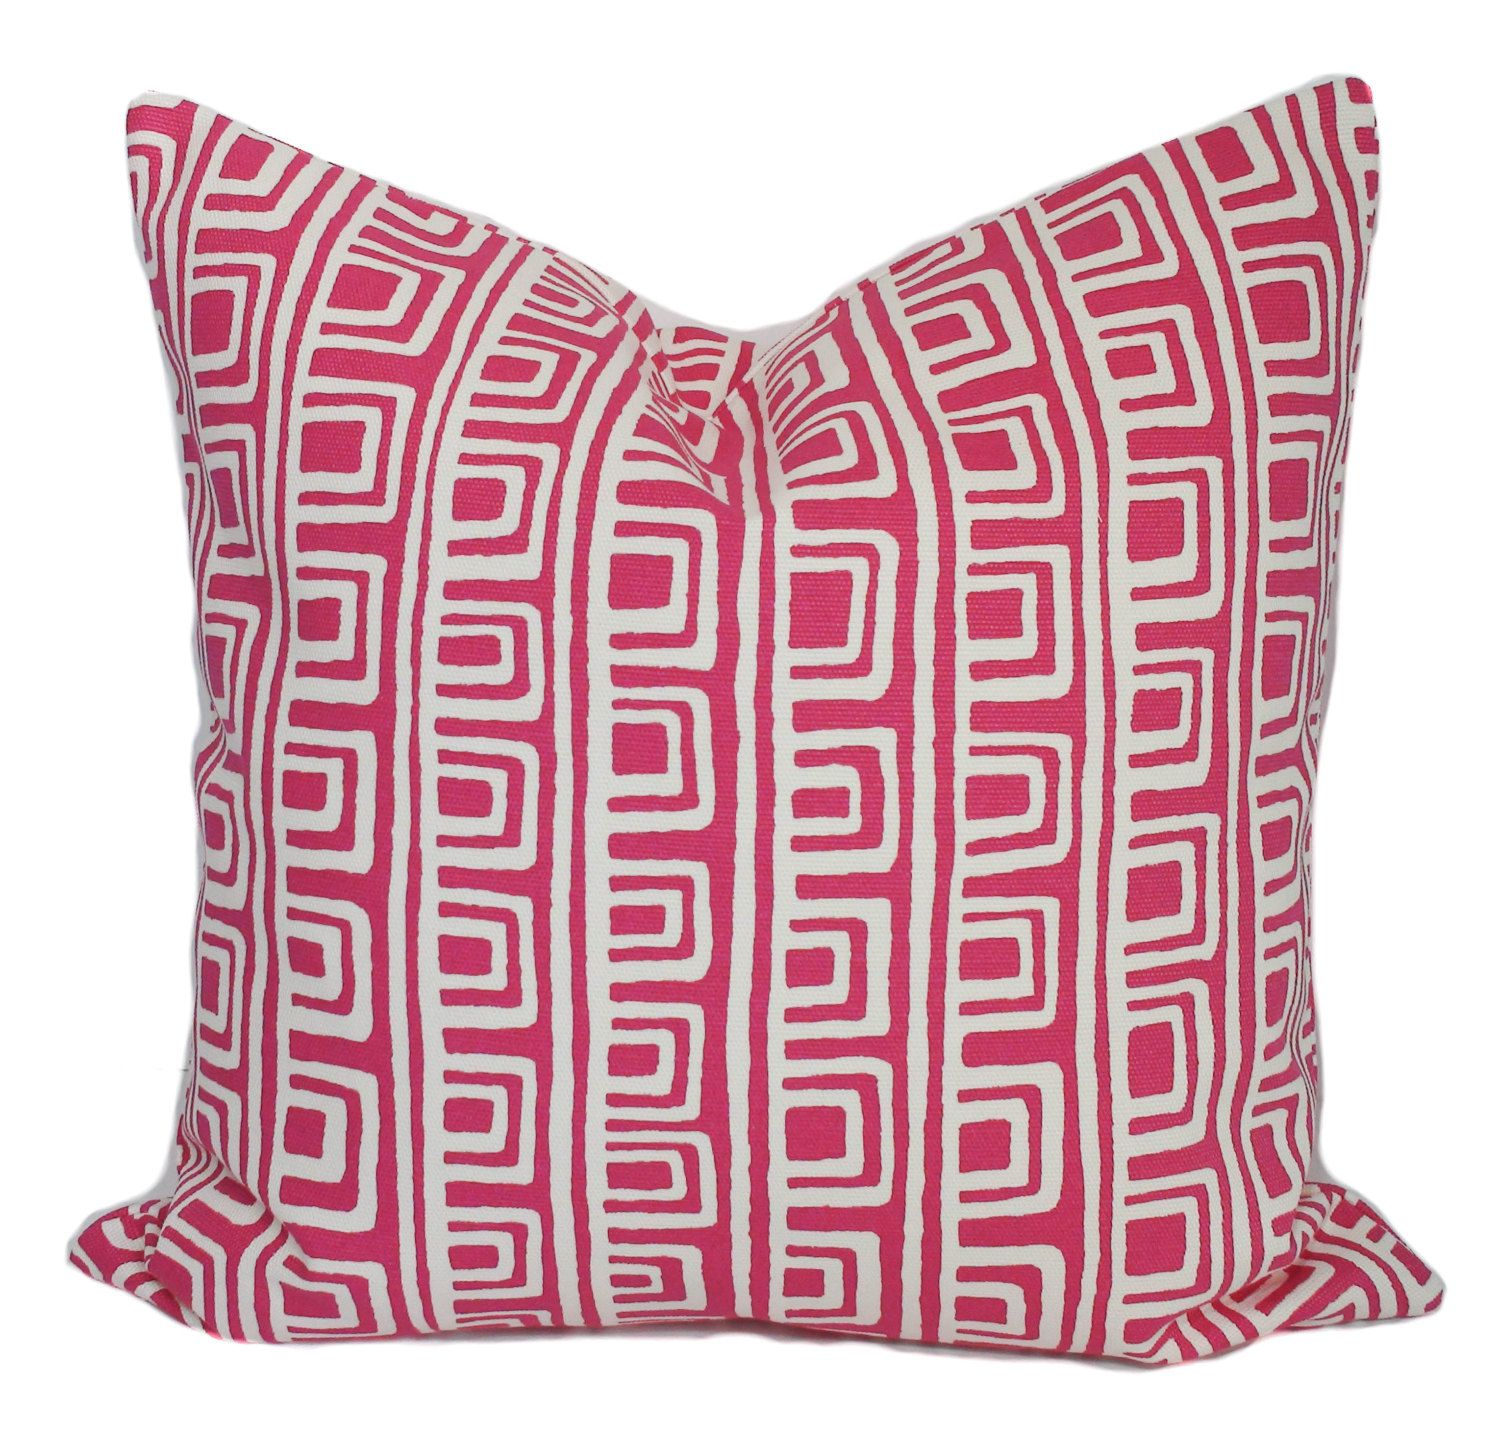 Pink white decorative throw pillow cover with zipper